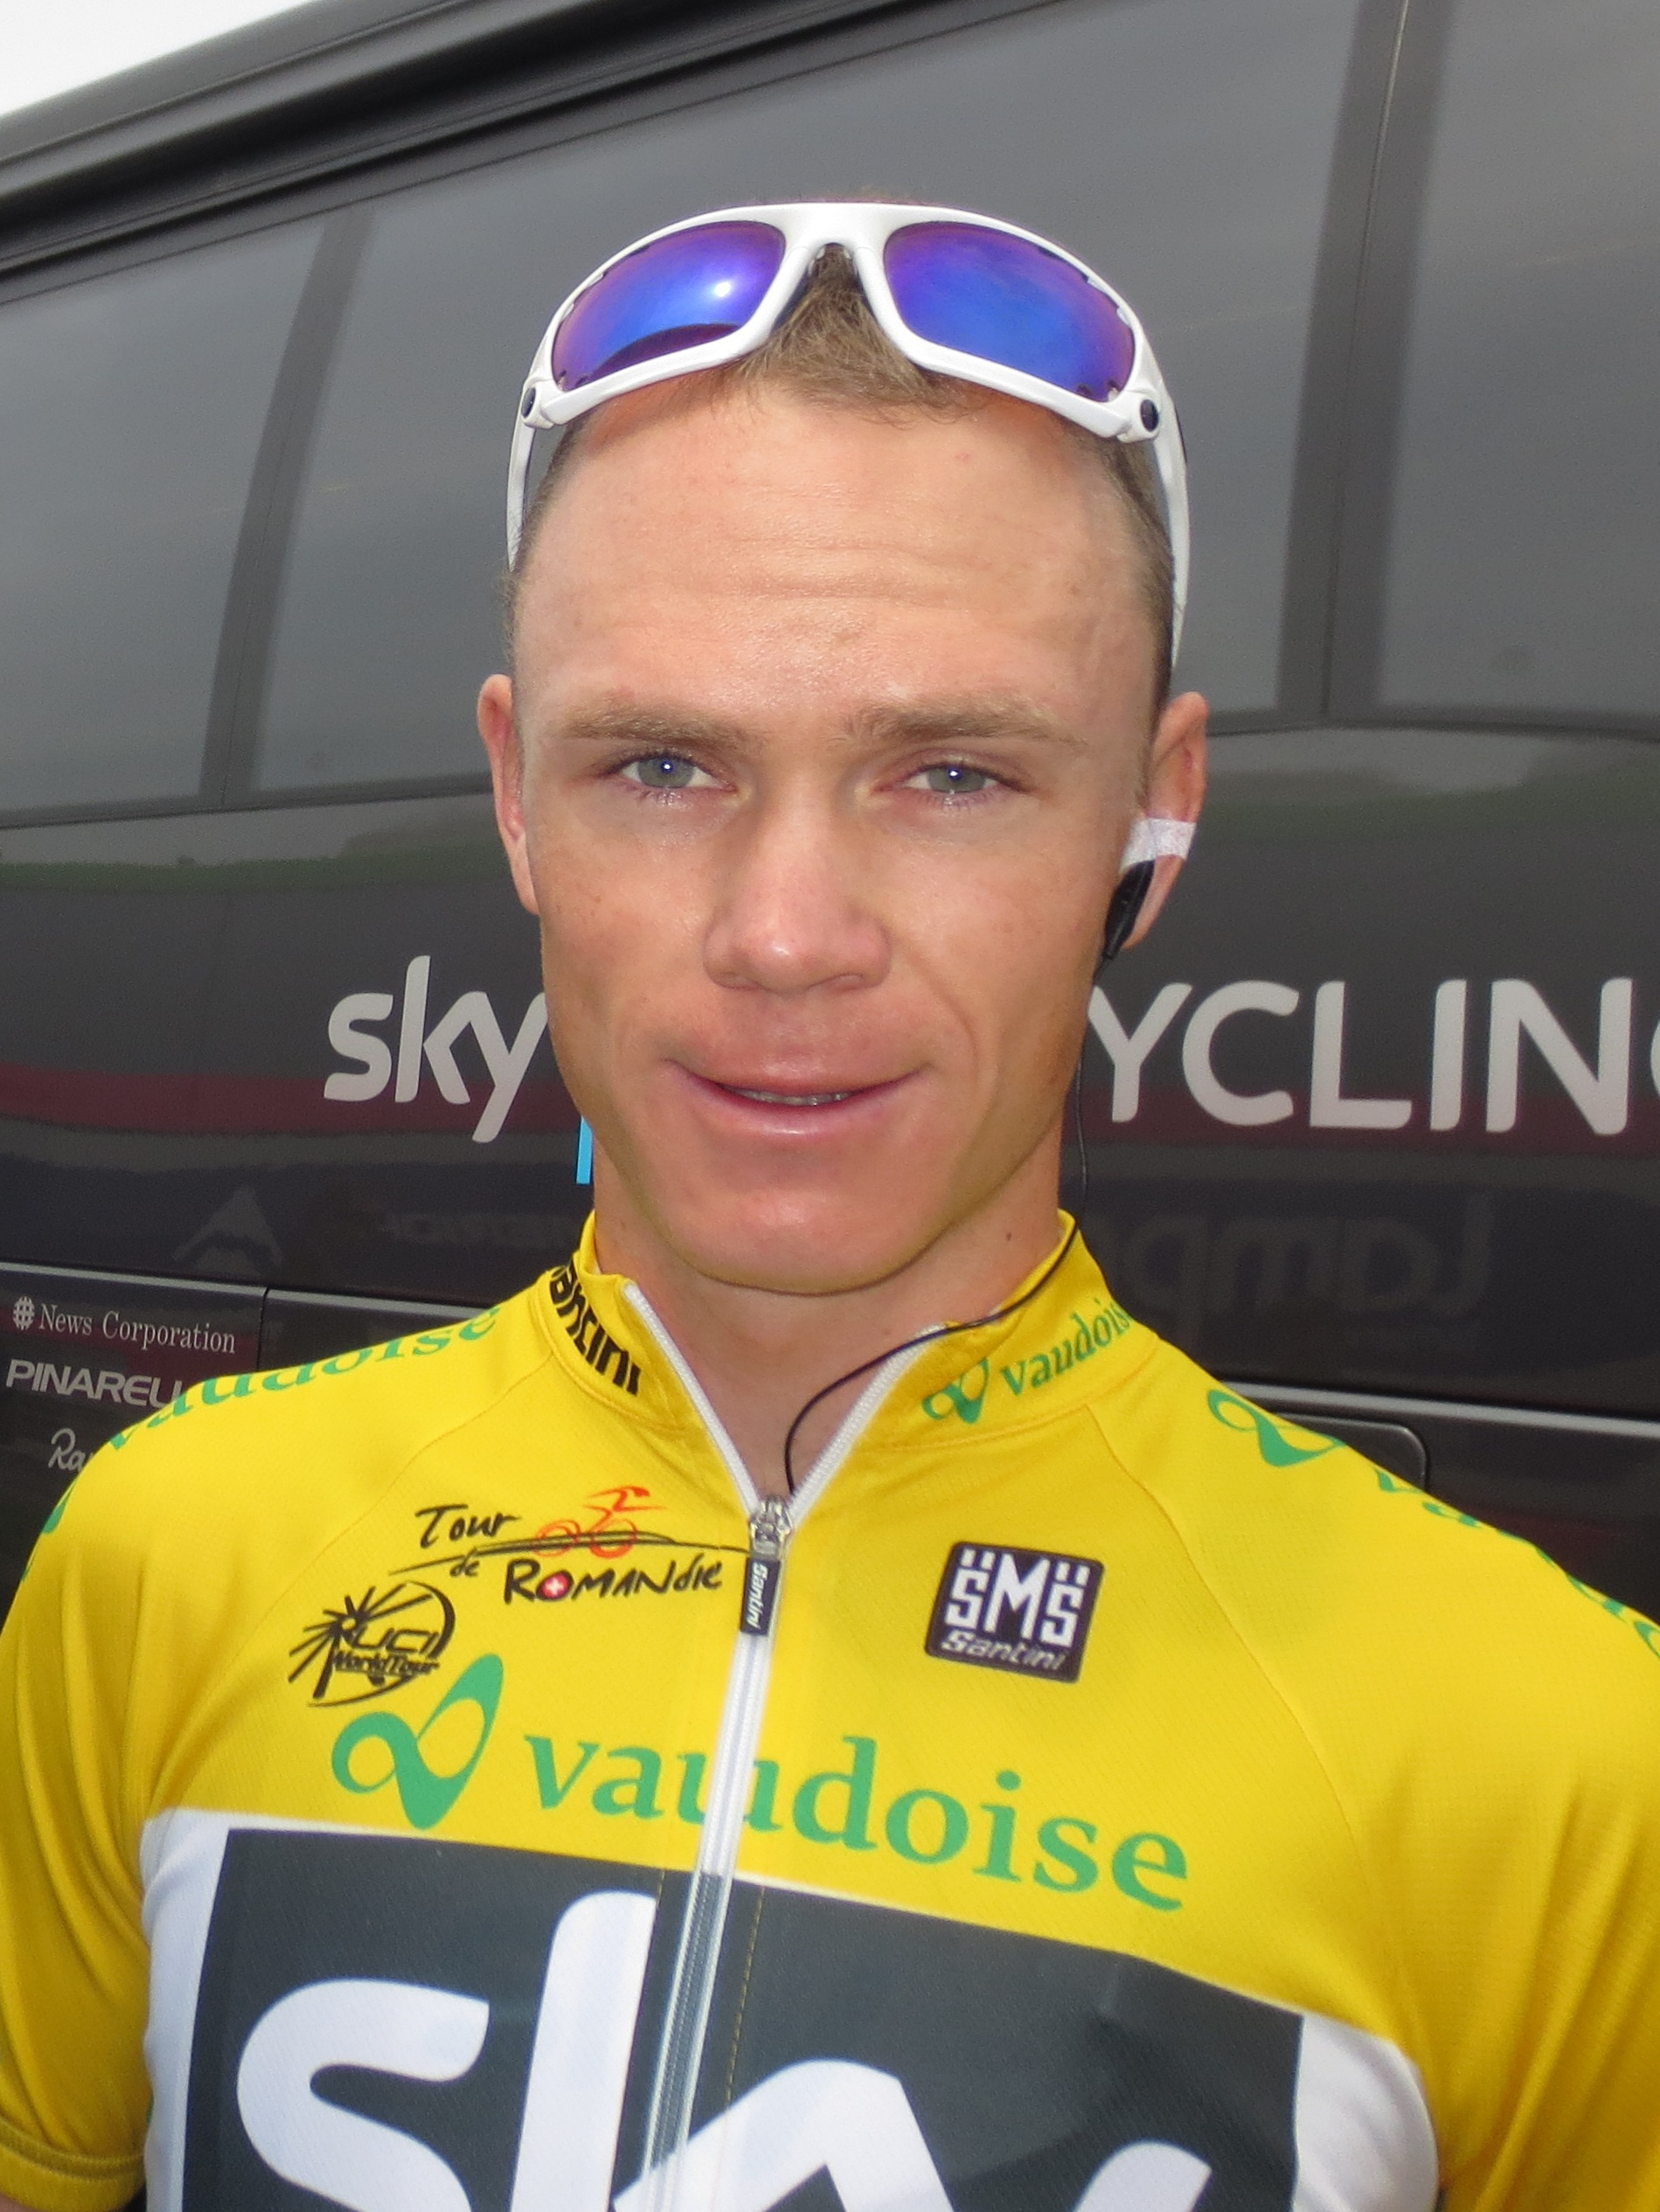 Chris Froome  - 2018 Brown/Black hair & alternative hair style.